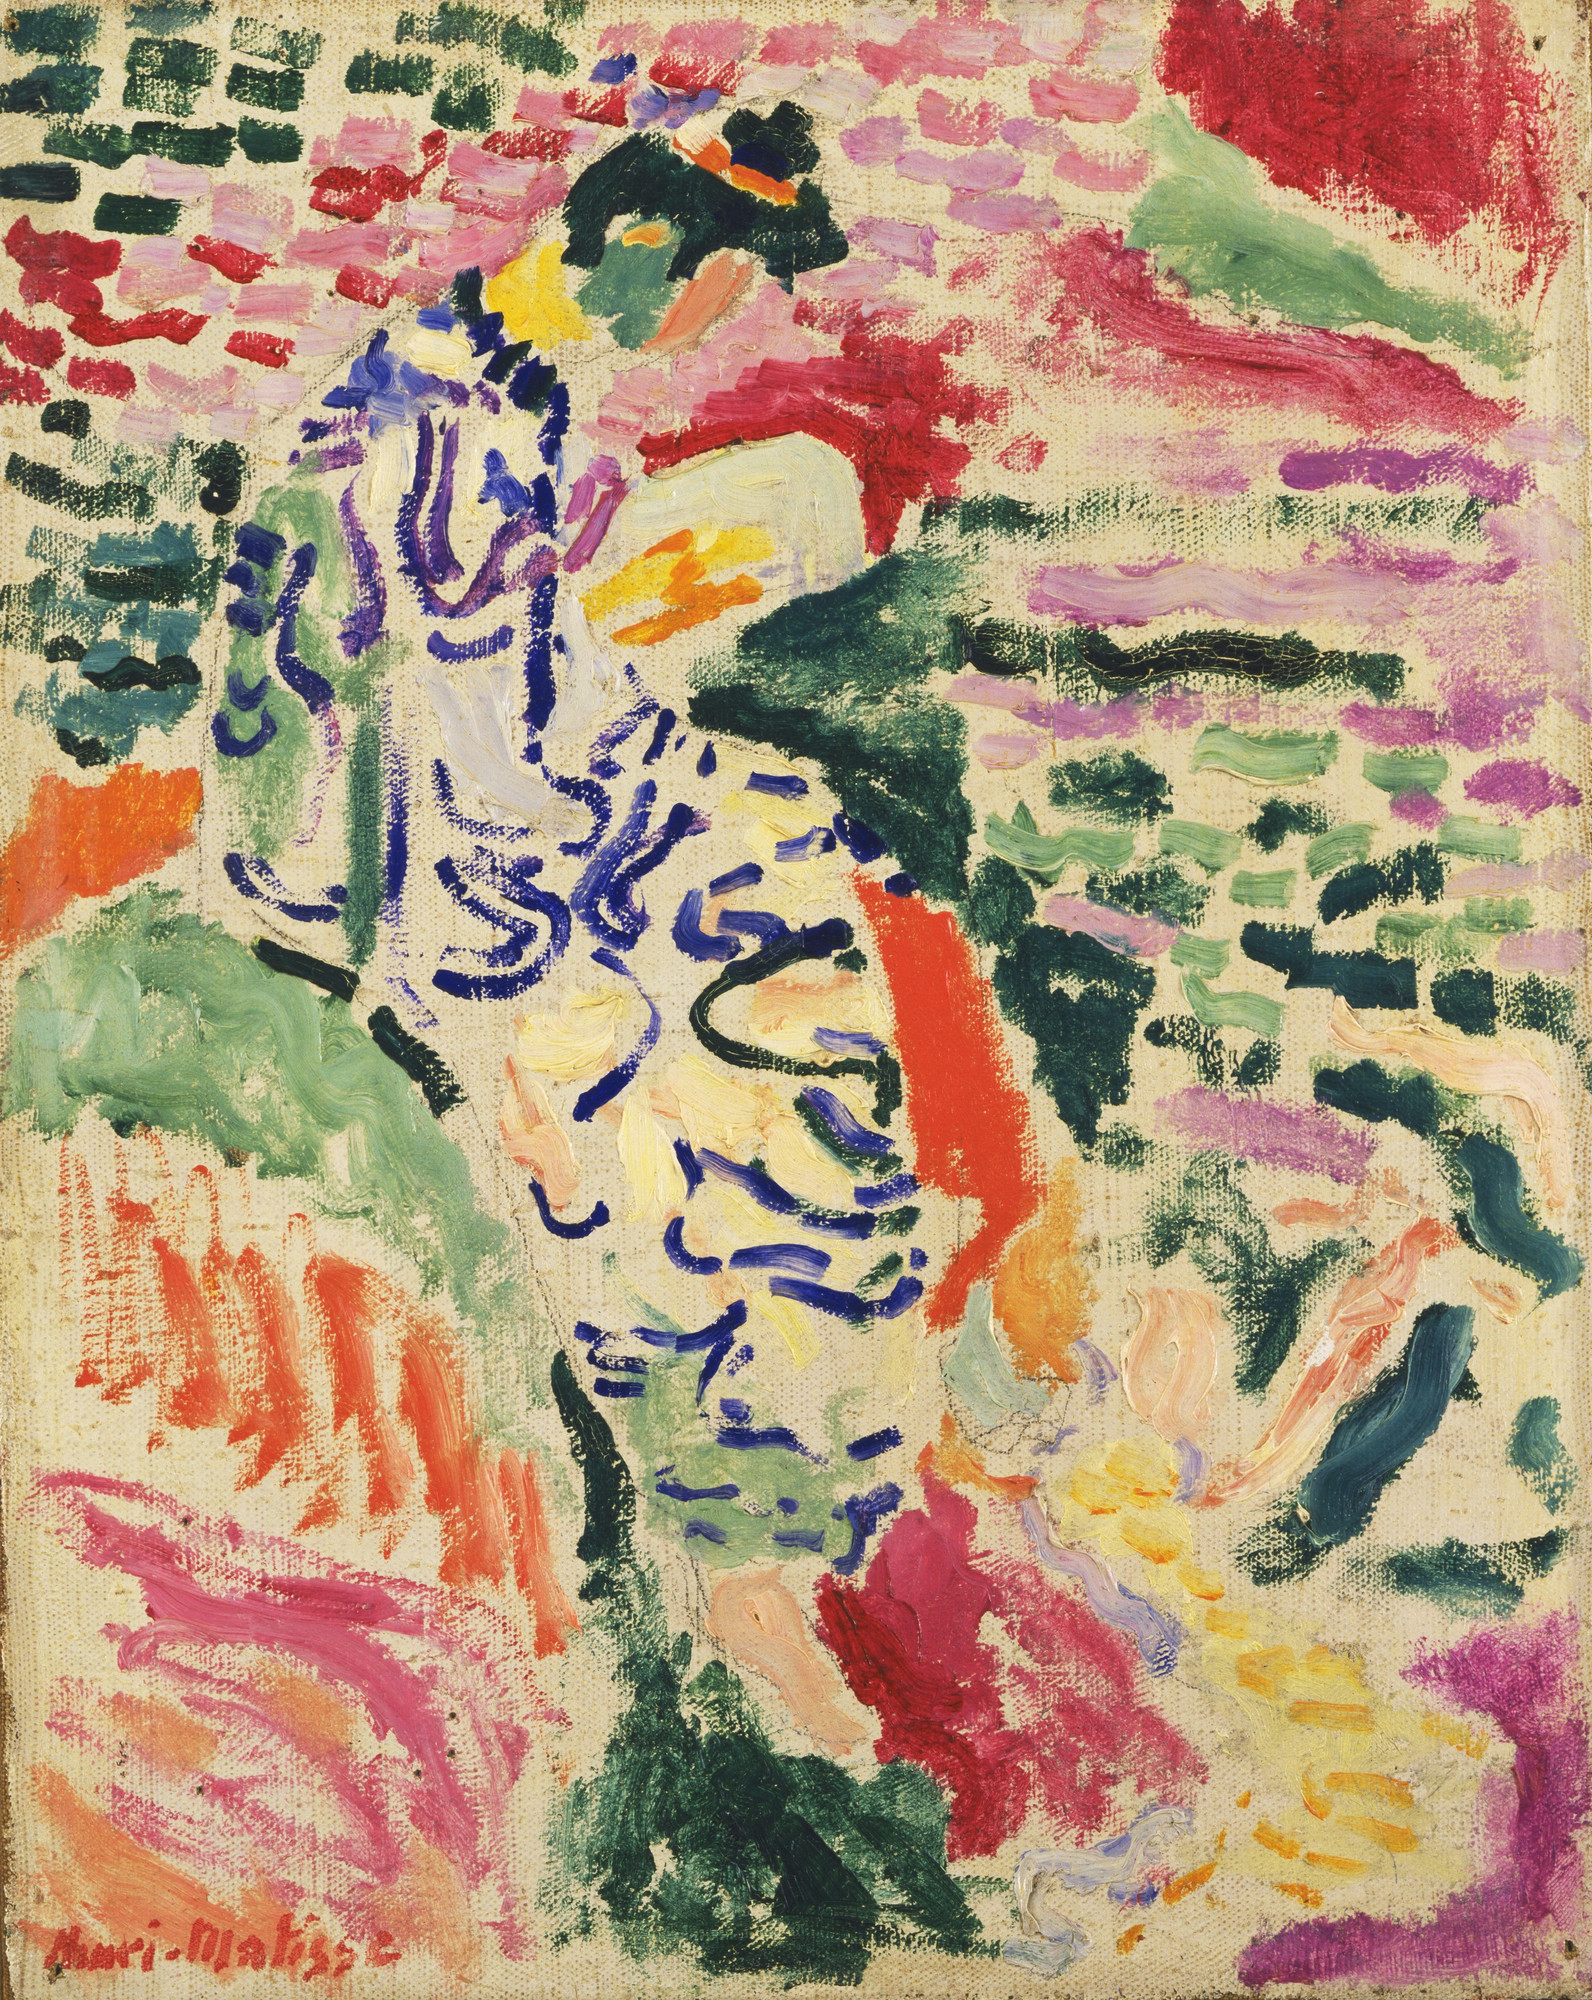 Henri Matisse. La Japonaise: Woman beside the Water. Collioure, summer 1905